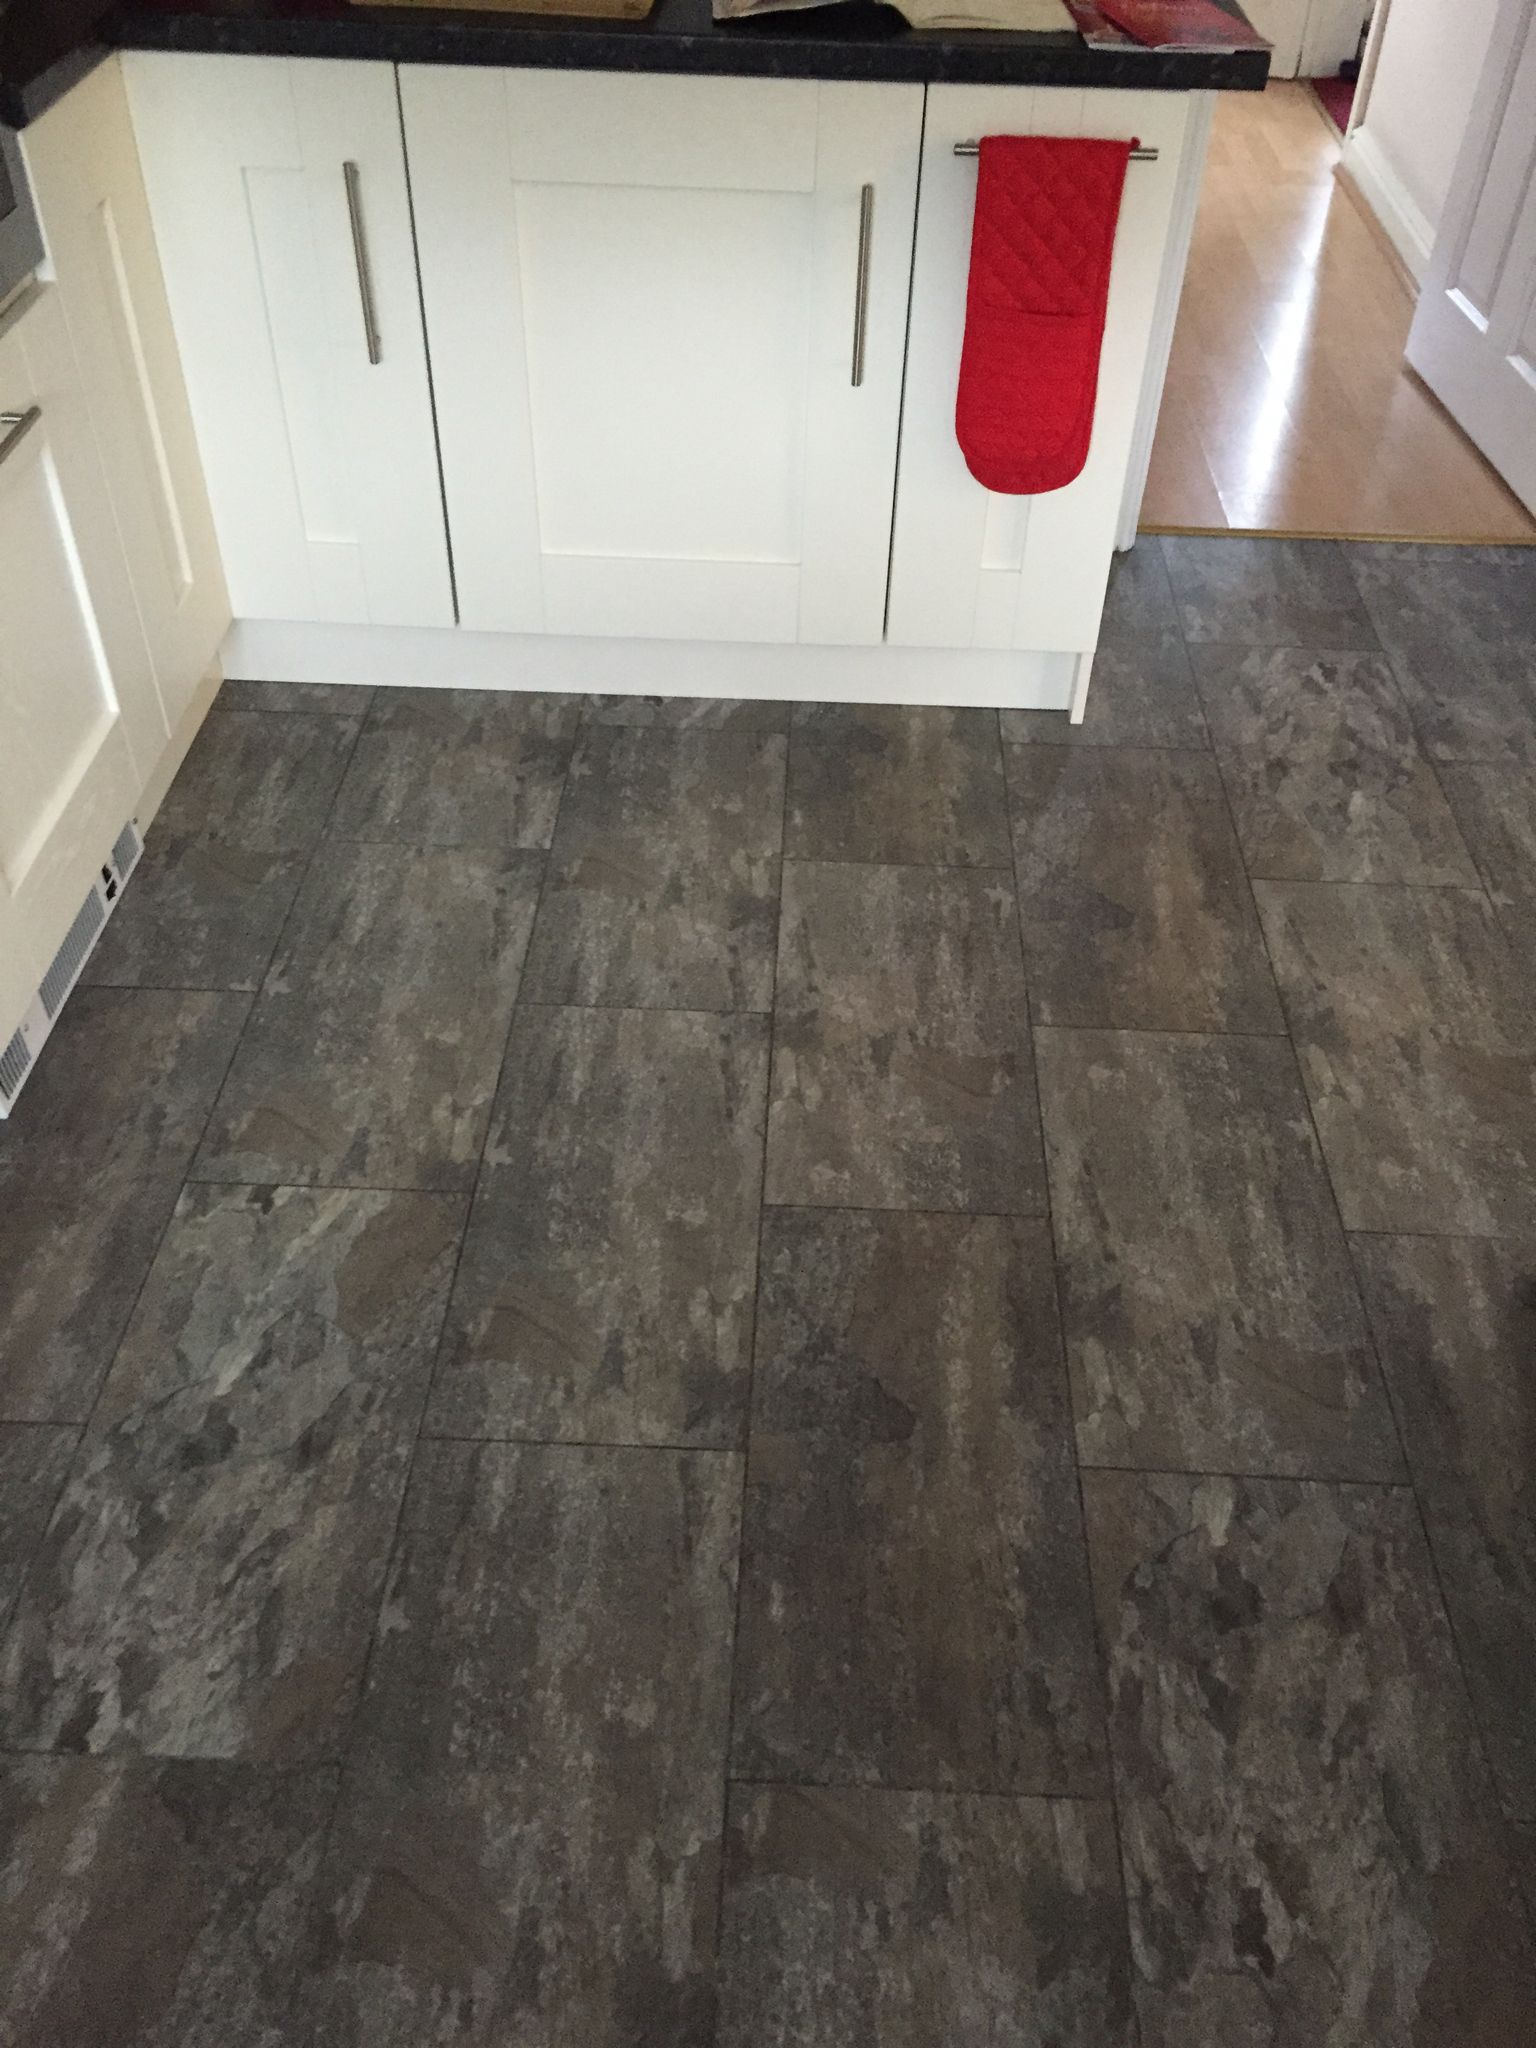 Polyflor Camaro Ocean Slate with a Graphite Grout Strip